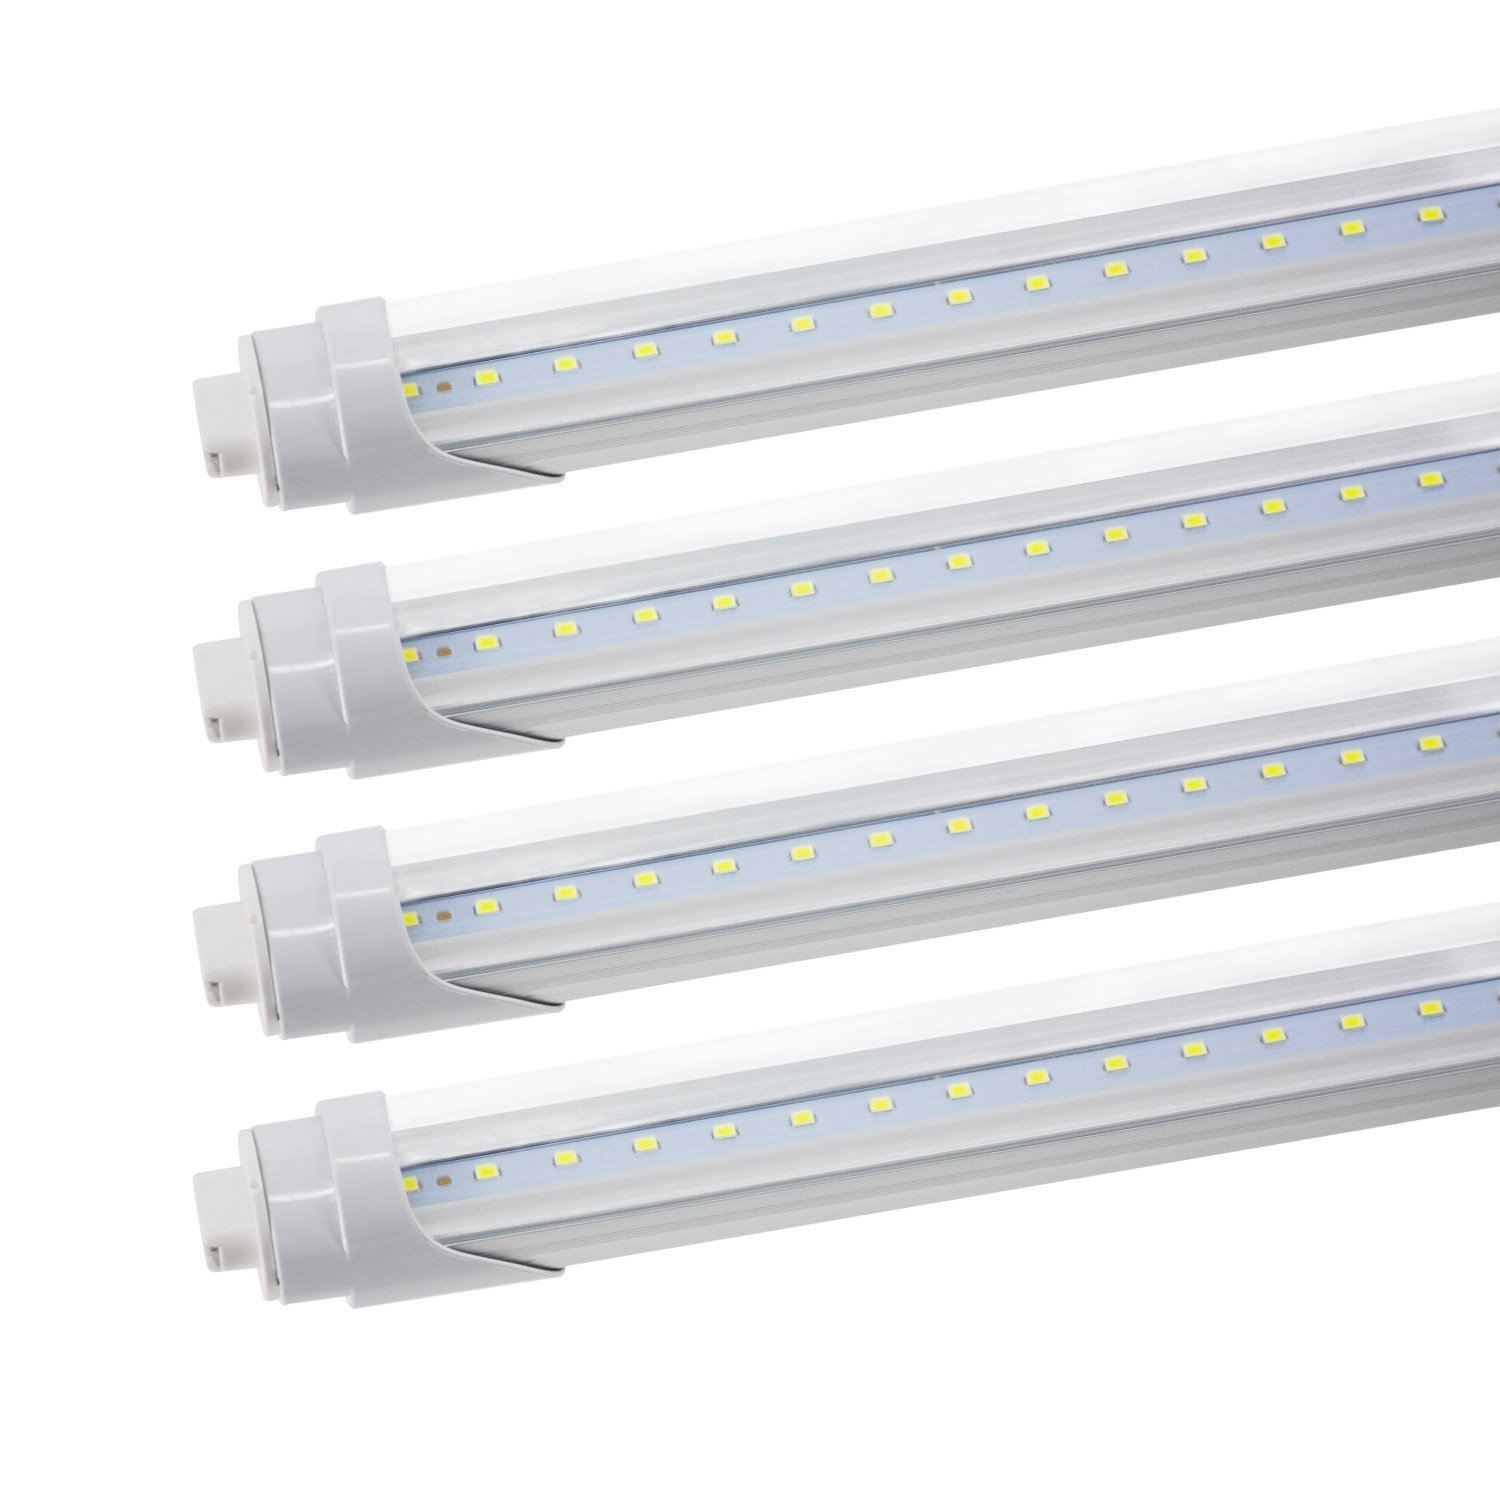 Jesled R17d 8ft T8 T10 T12 Led Tube Light 45w Clear Cover Cool 8 Foot Fluorescent Wiring Diagram White 6000k Replacement For F96t12 Cw Ho 100watt Ballast Bypass 4 Pack